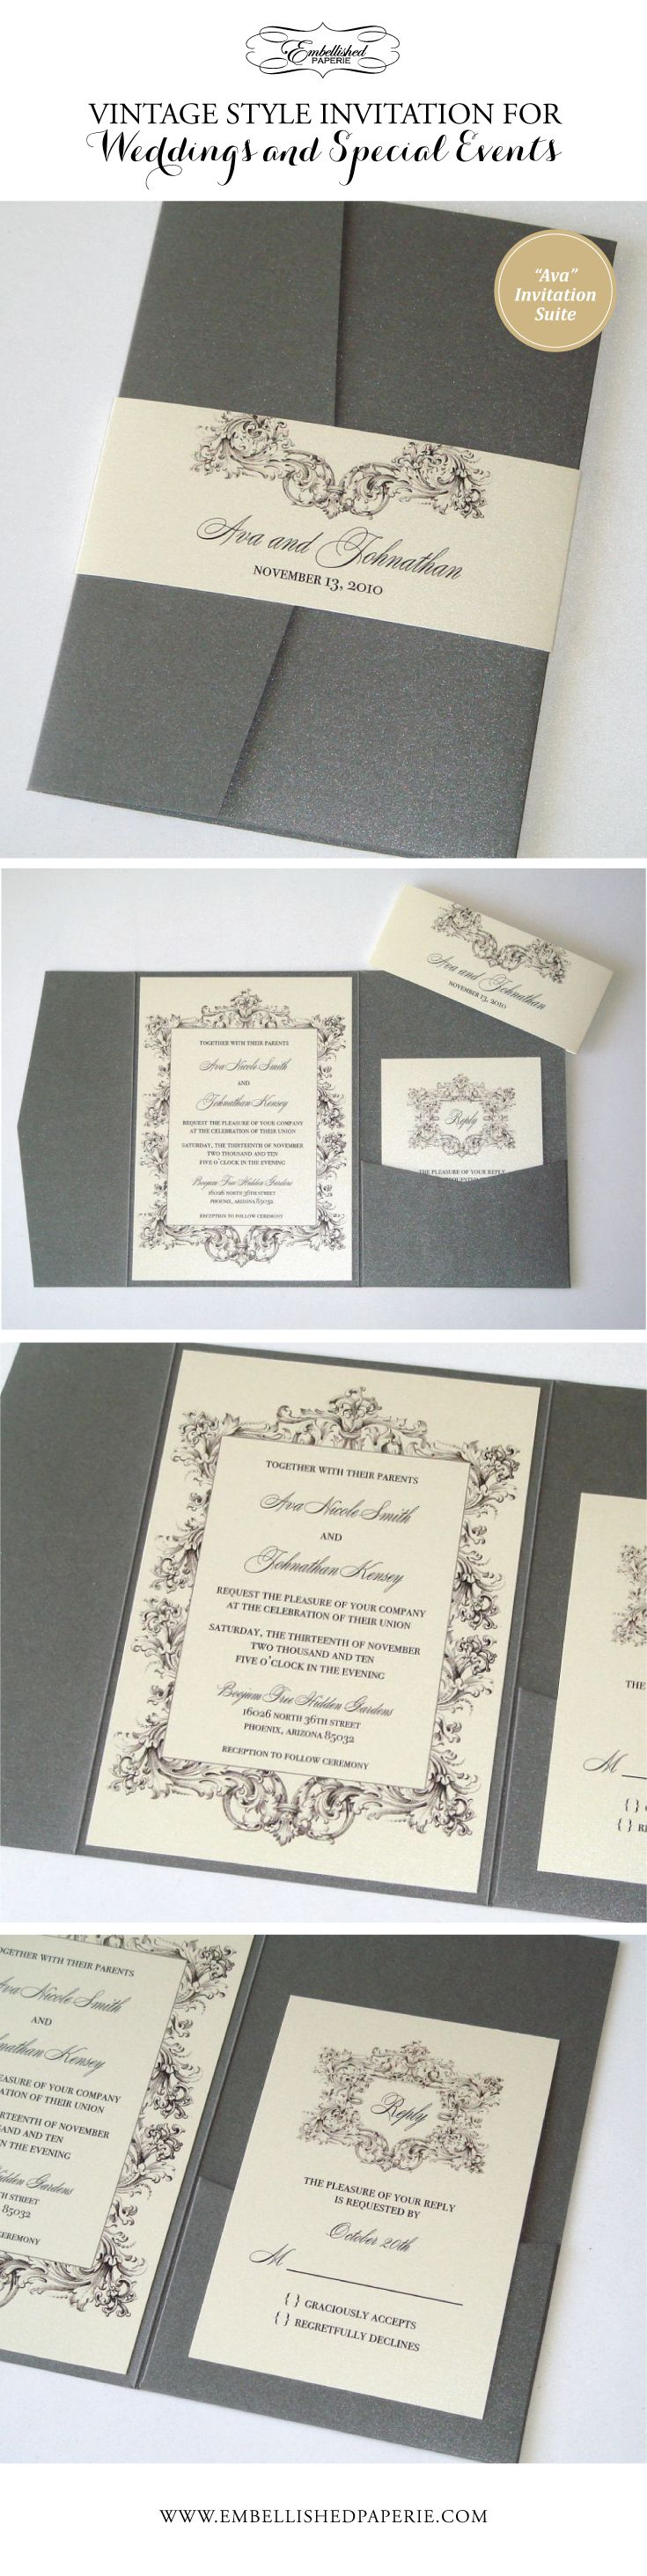 603 best wedding invitations images on Pinterest | Bridal ...